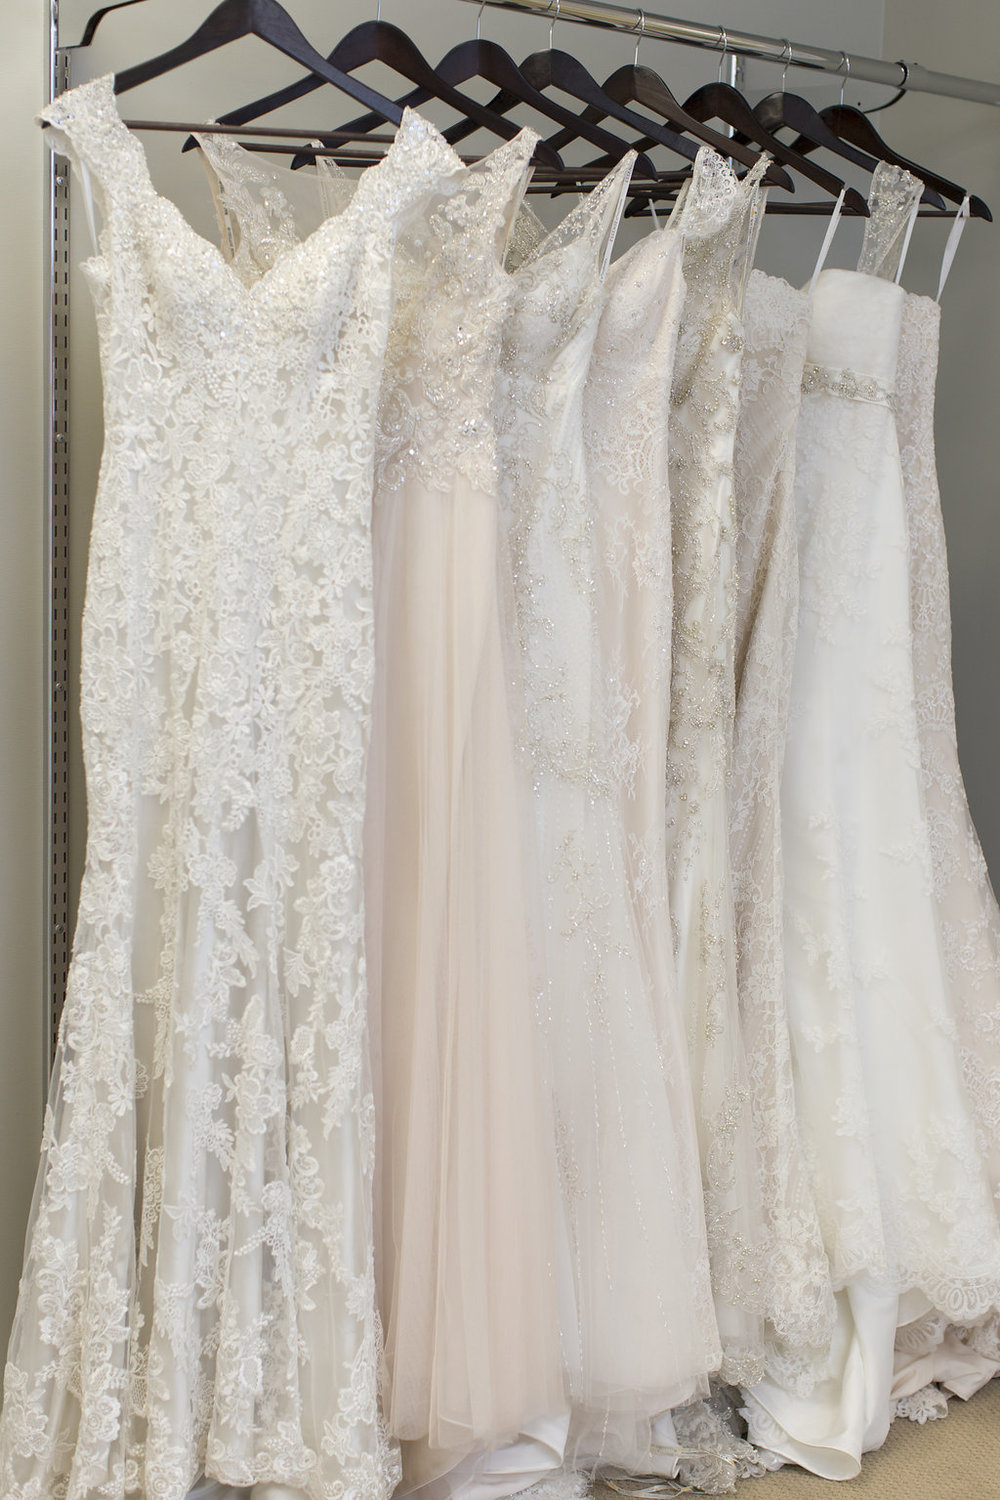 Laurie_Brotherton_Charme_Bridal_and_Prom_Boutique_024.jpg